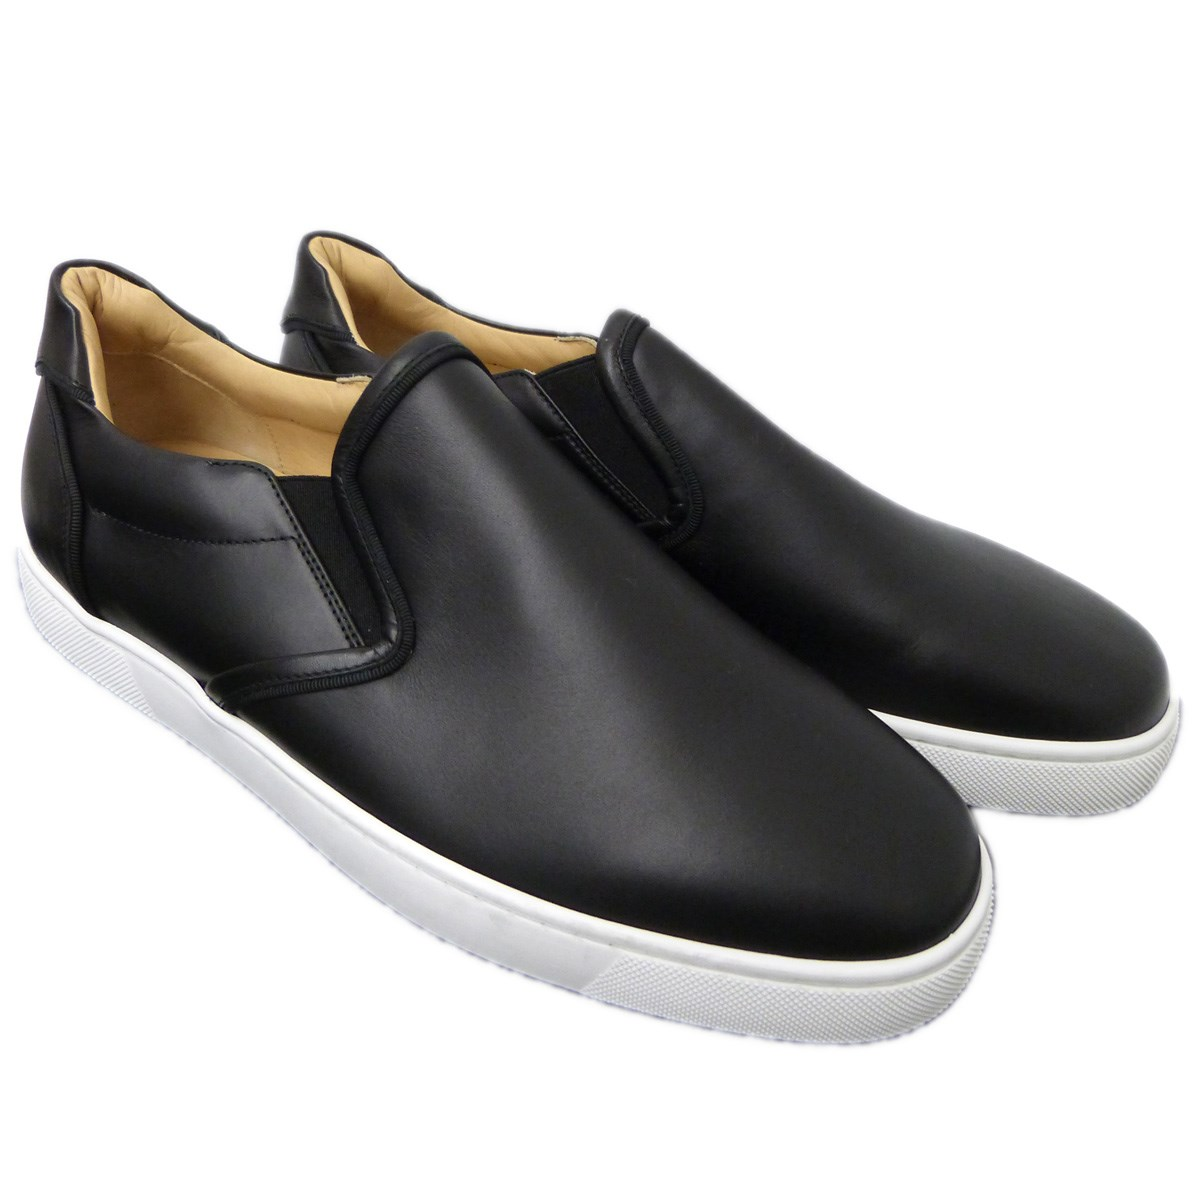 low priced 43449 082a4 CHRISTIAN LOUBOUTIN